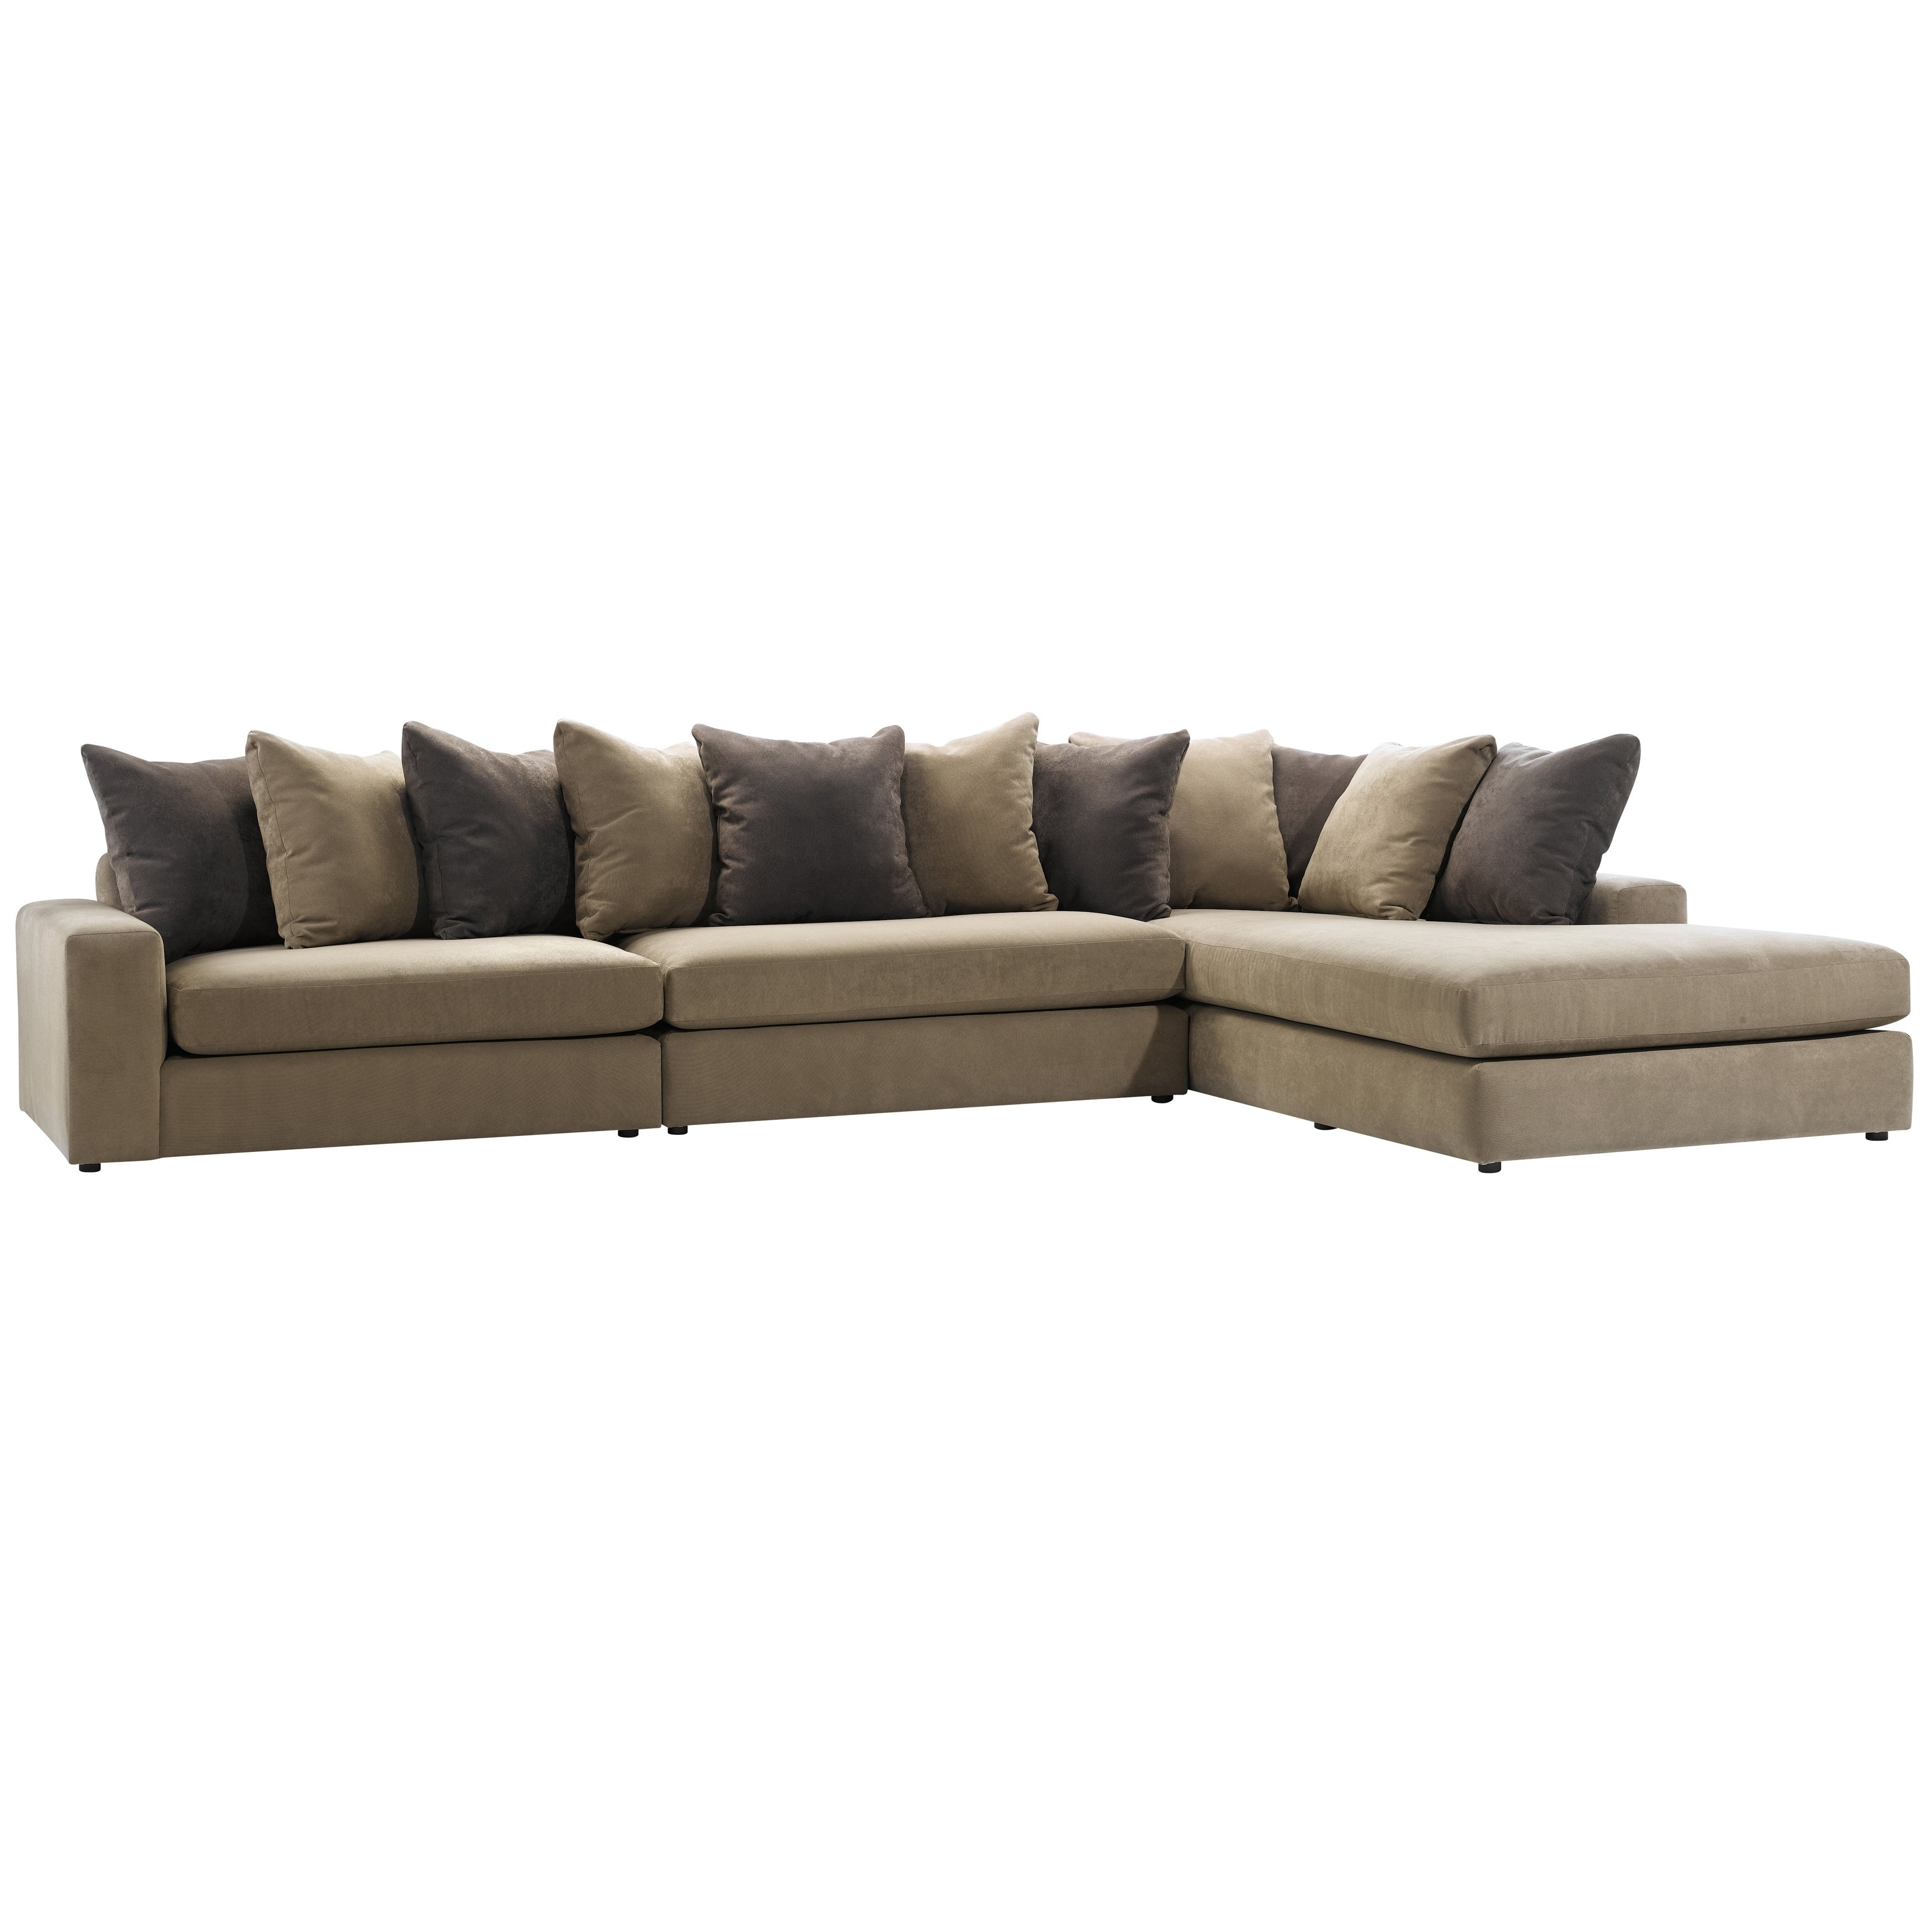 Made to Order Roche Studio Peyton Brown Fabric Sectional Sofa